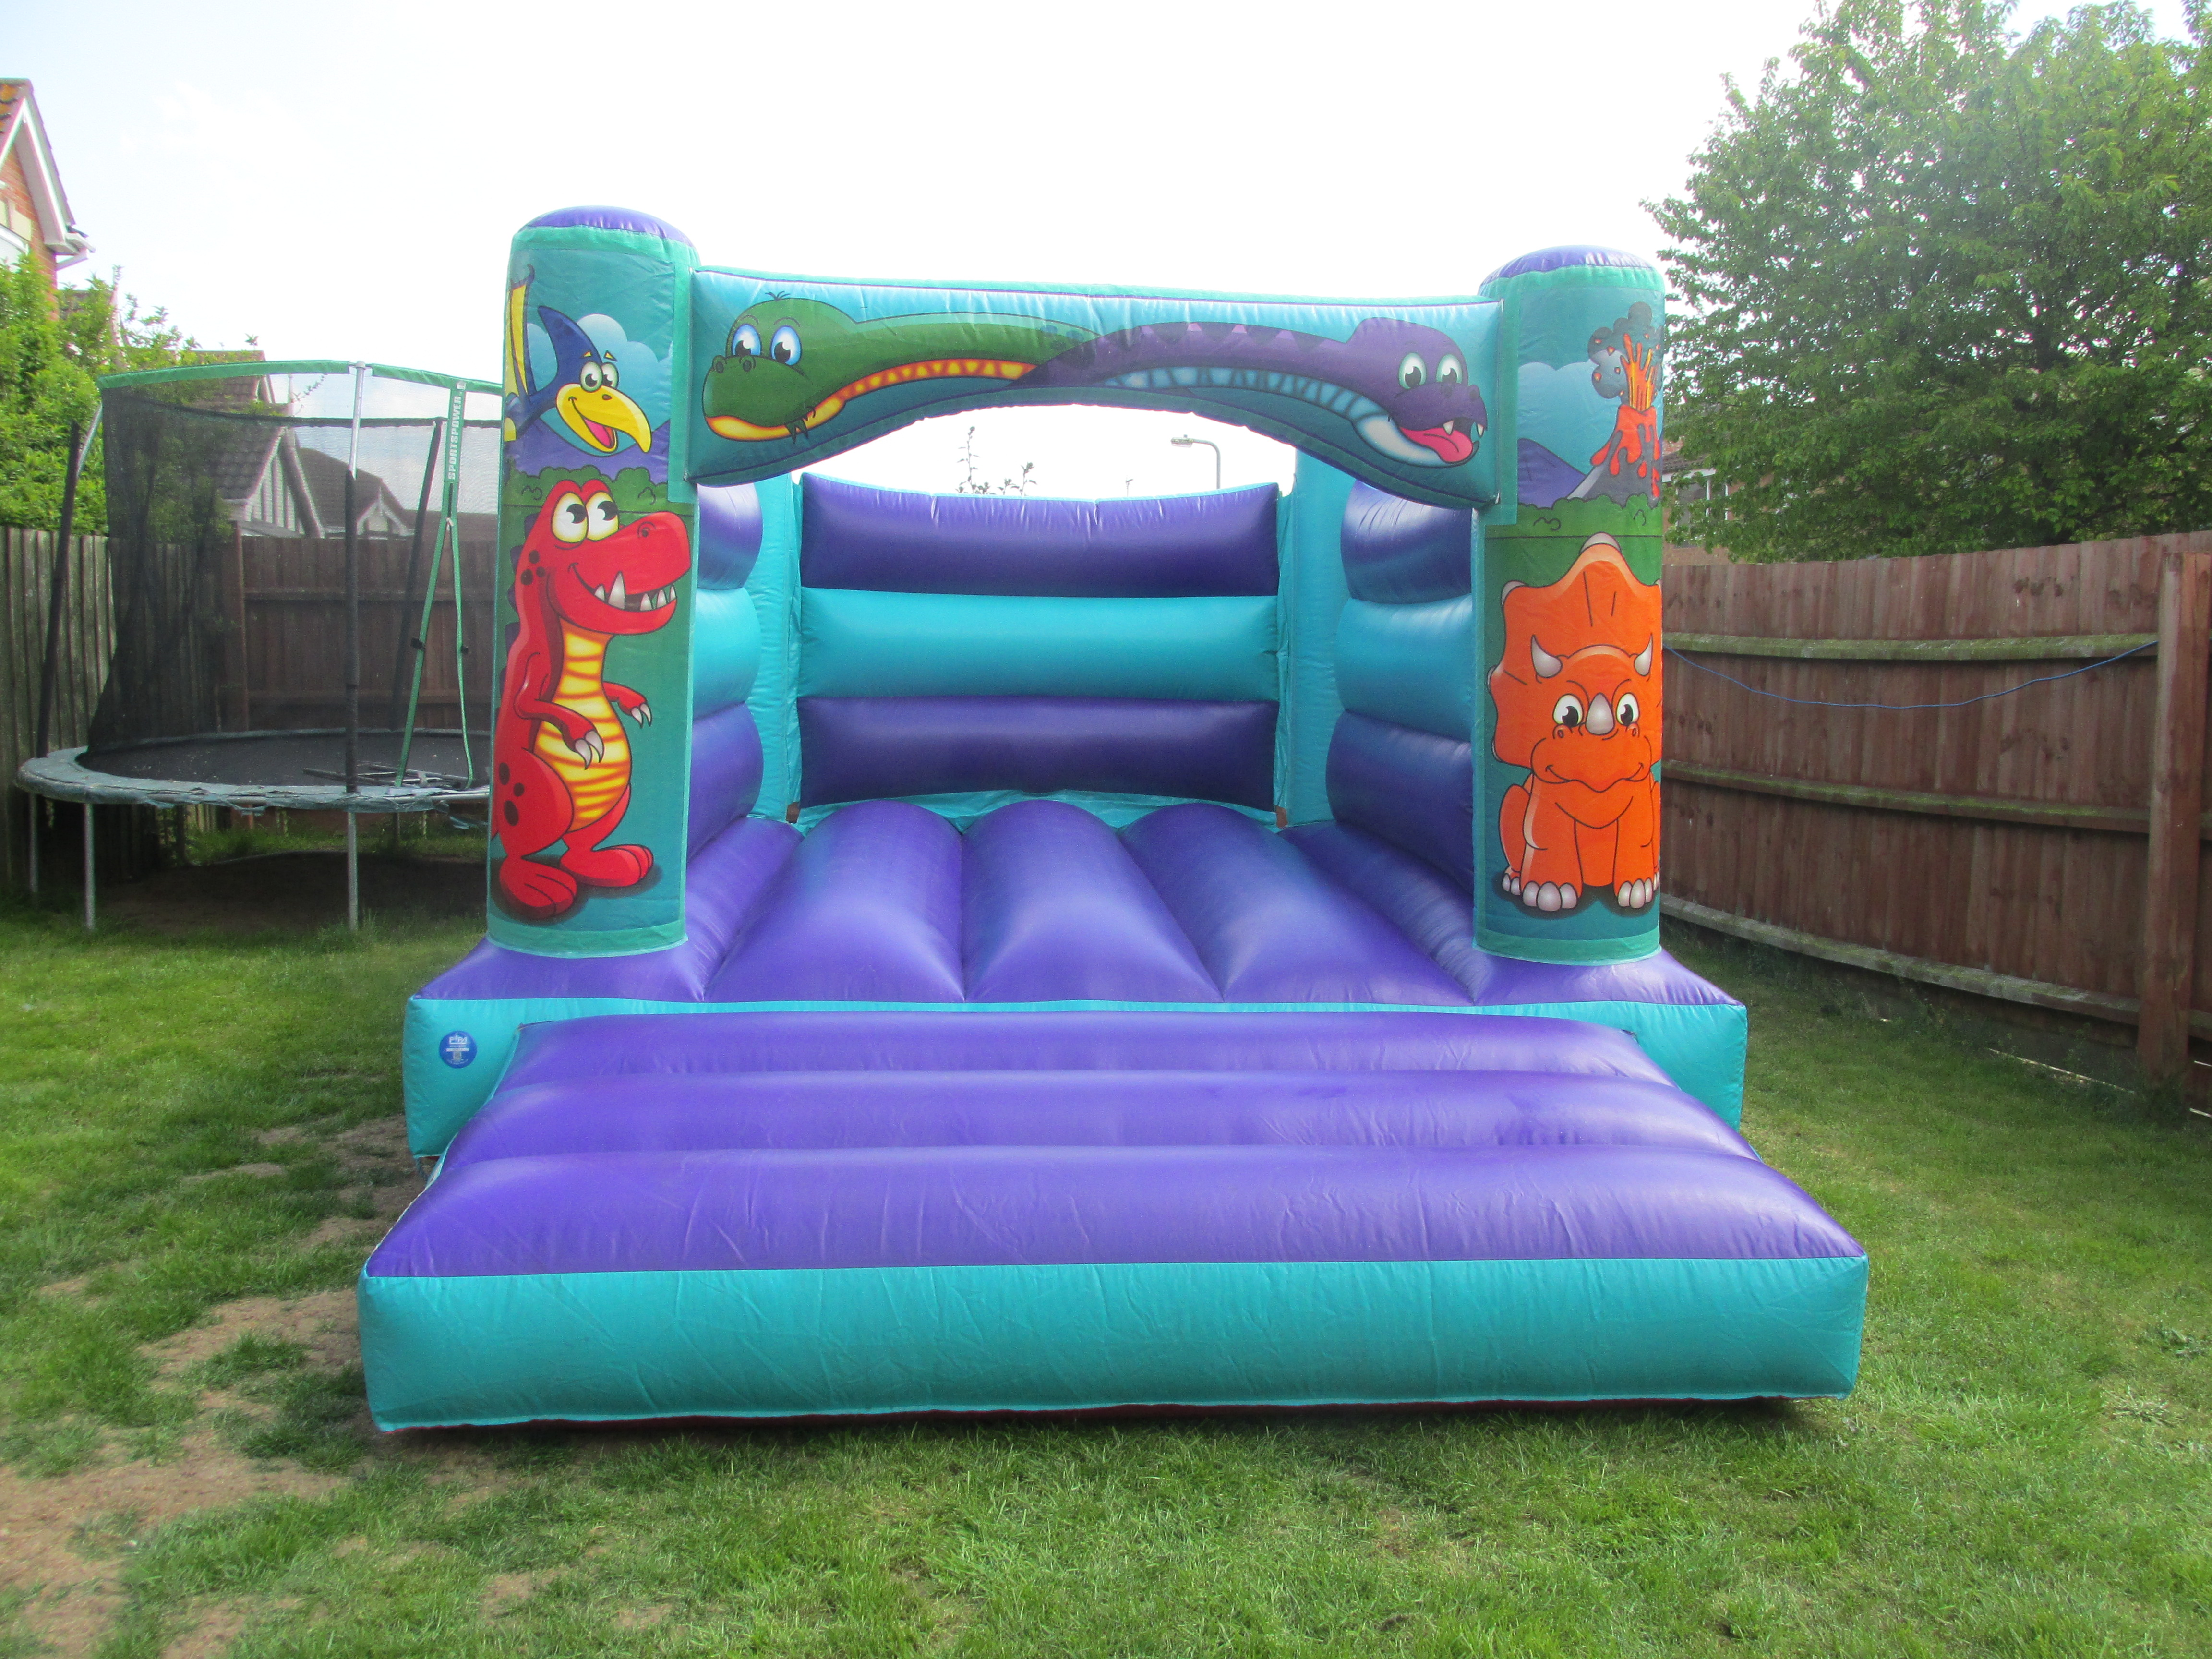 Cartoon Dinosaur Themed Bouncy Castle Hire In Bourne, Peterborough, Grantham and Spalding